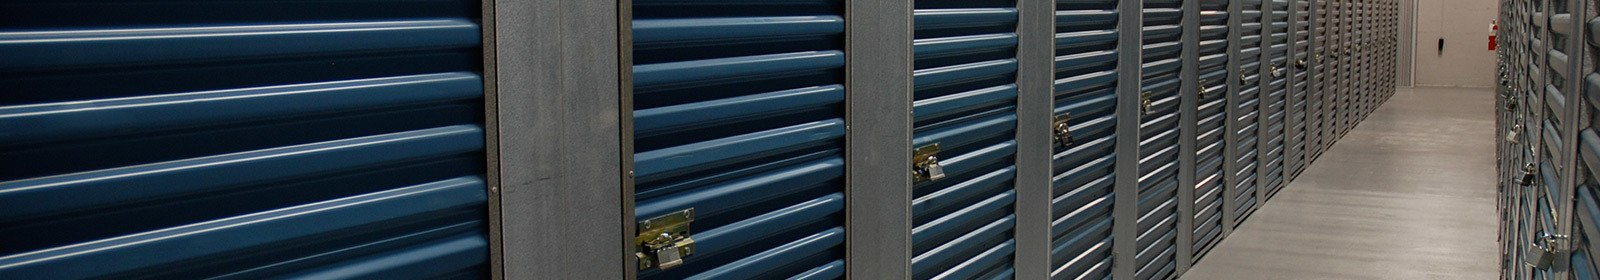 About Tampa Bay Self Storage